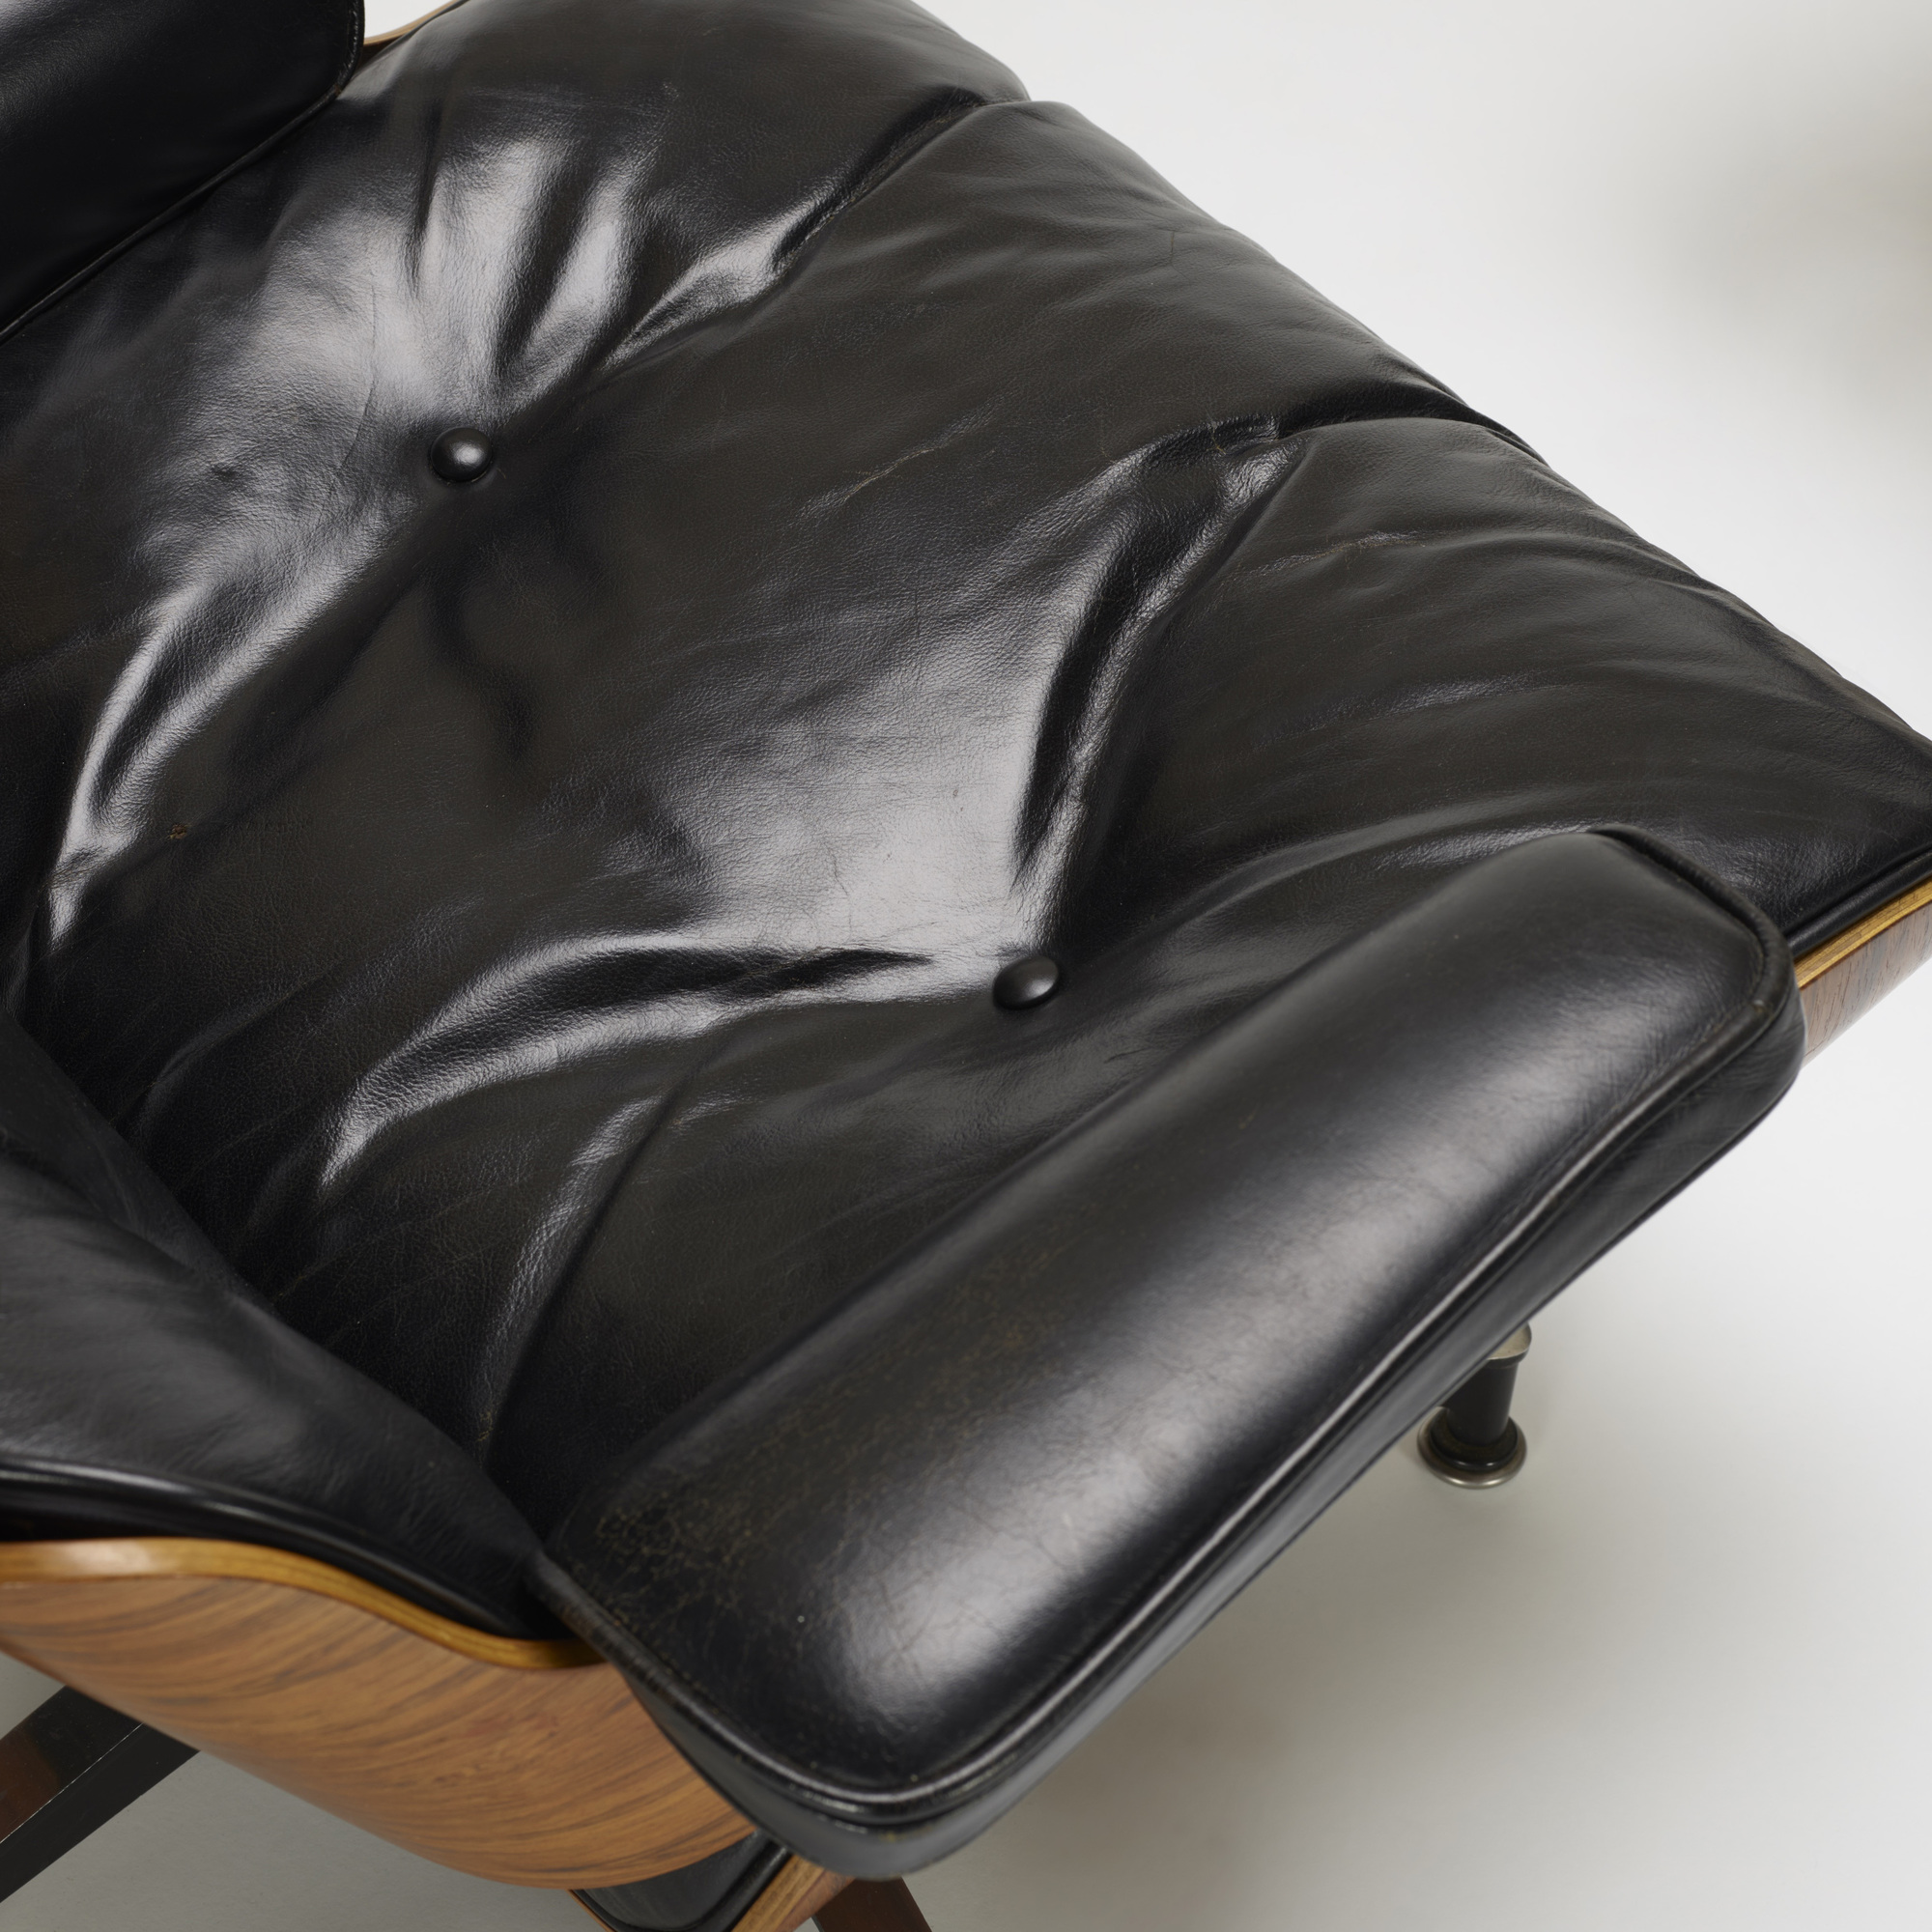 339: Charles and Ray Eames / 670 lounge chair and 671 ottoman (3 of 4)